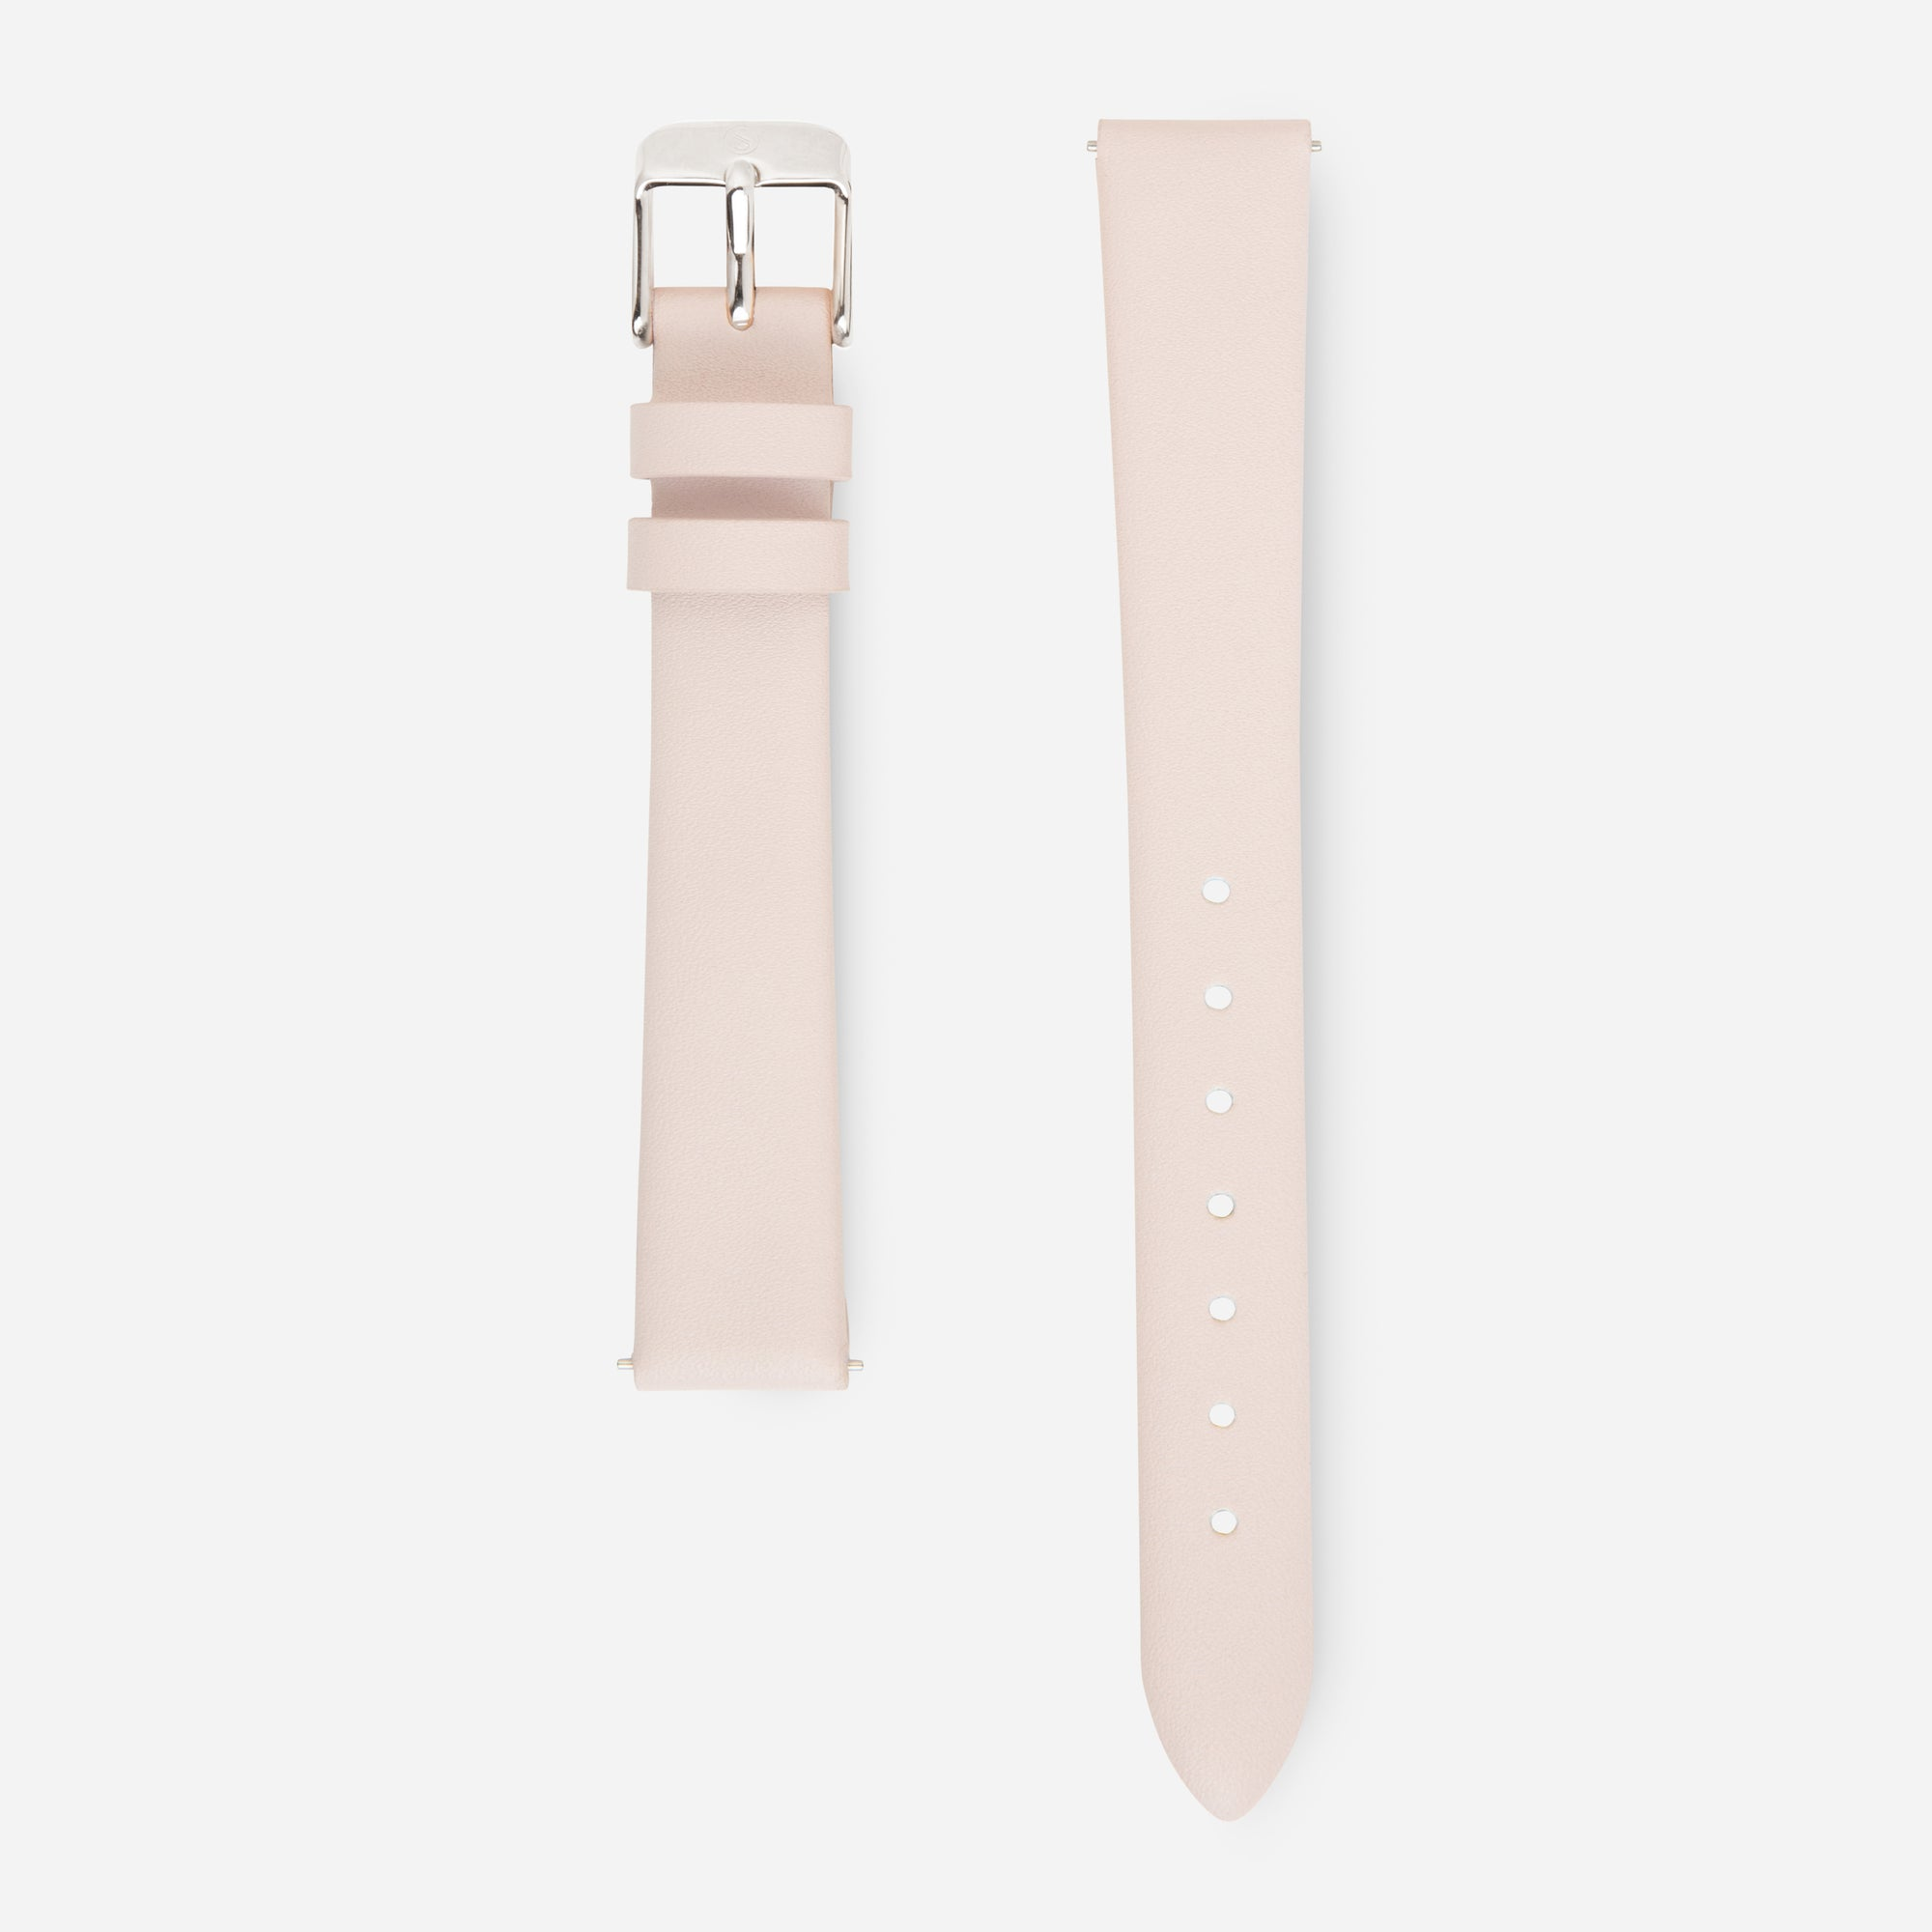 Soft Pink Silver Strap - Genuine Leather or Vegan Leather 33mm